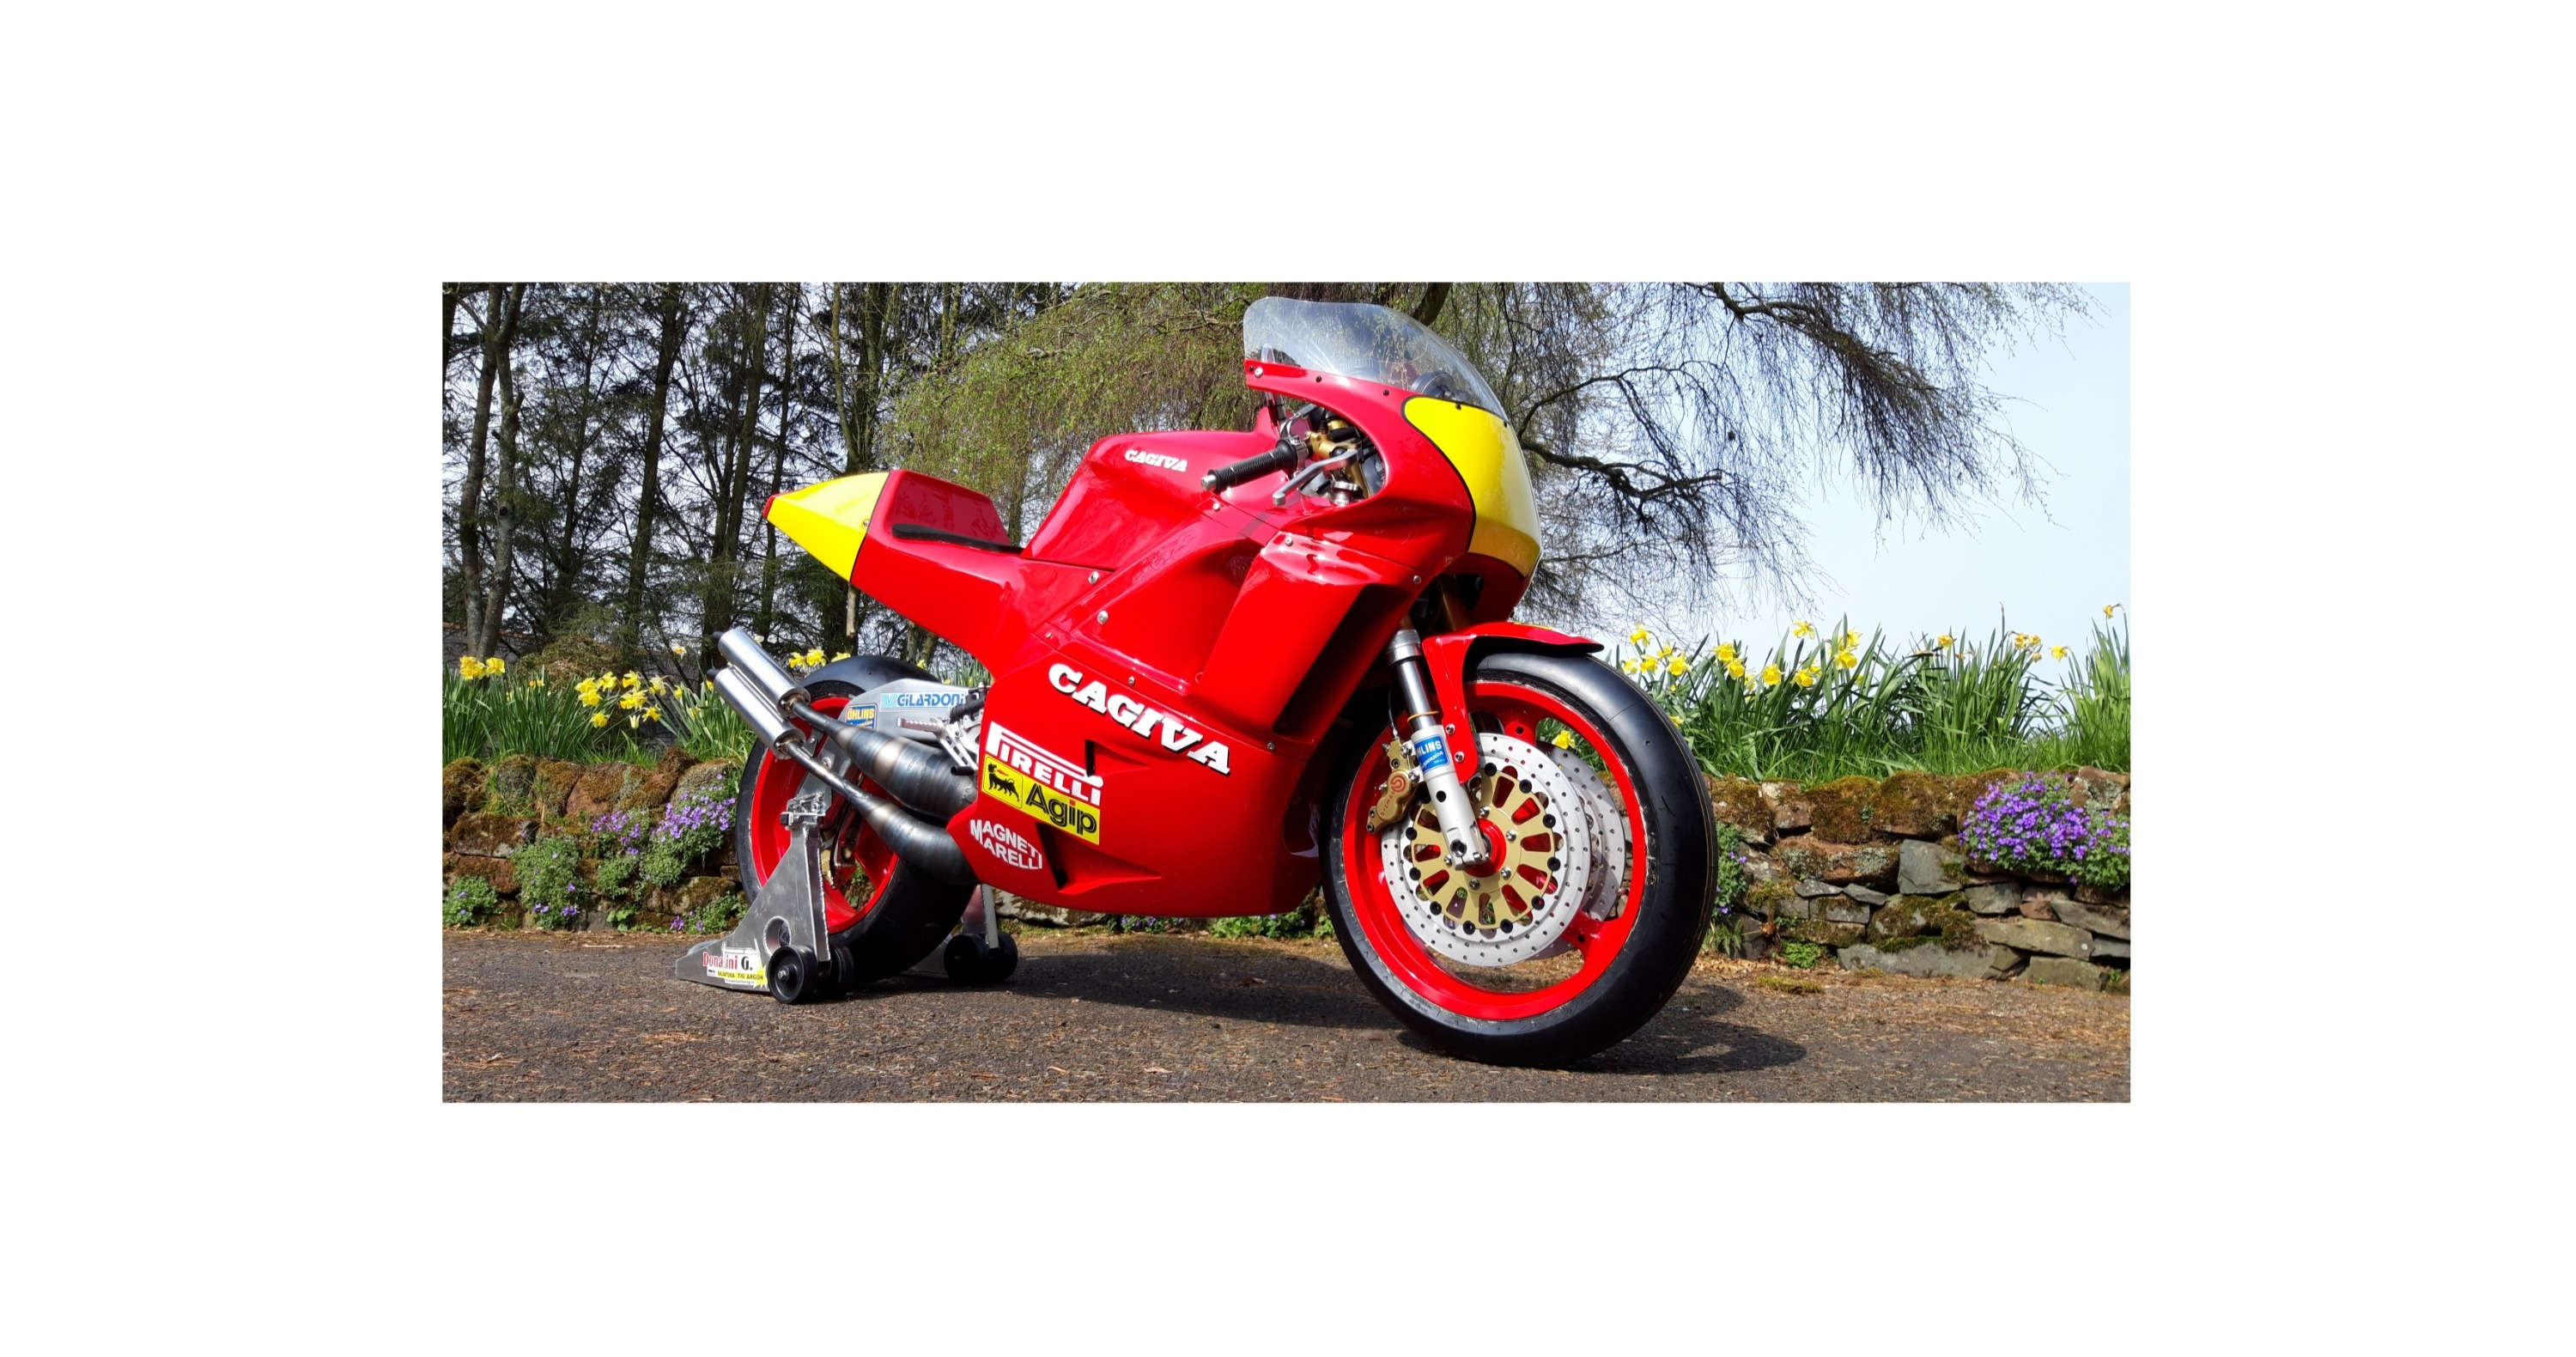 Cagiva Front Page1_edited_edited